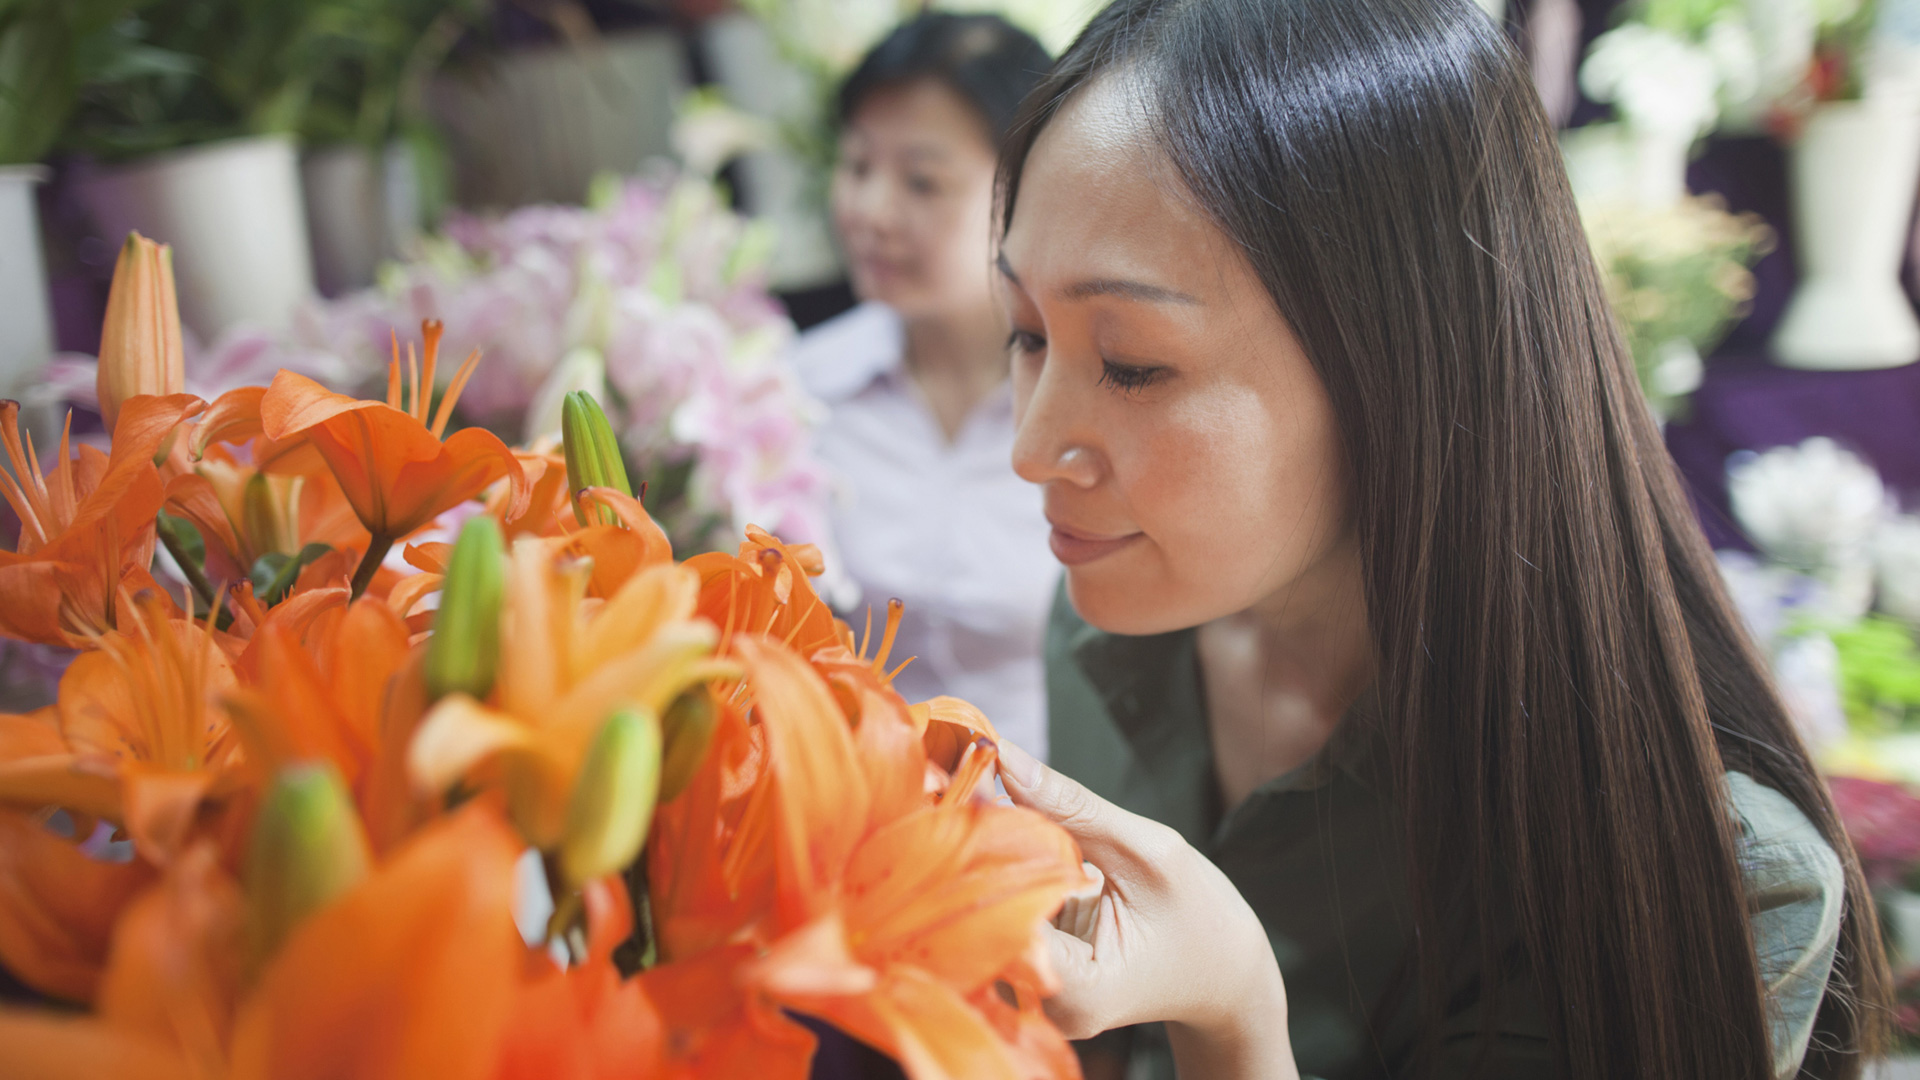 Woman picking out flowers | Sheknows.com